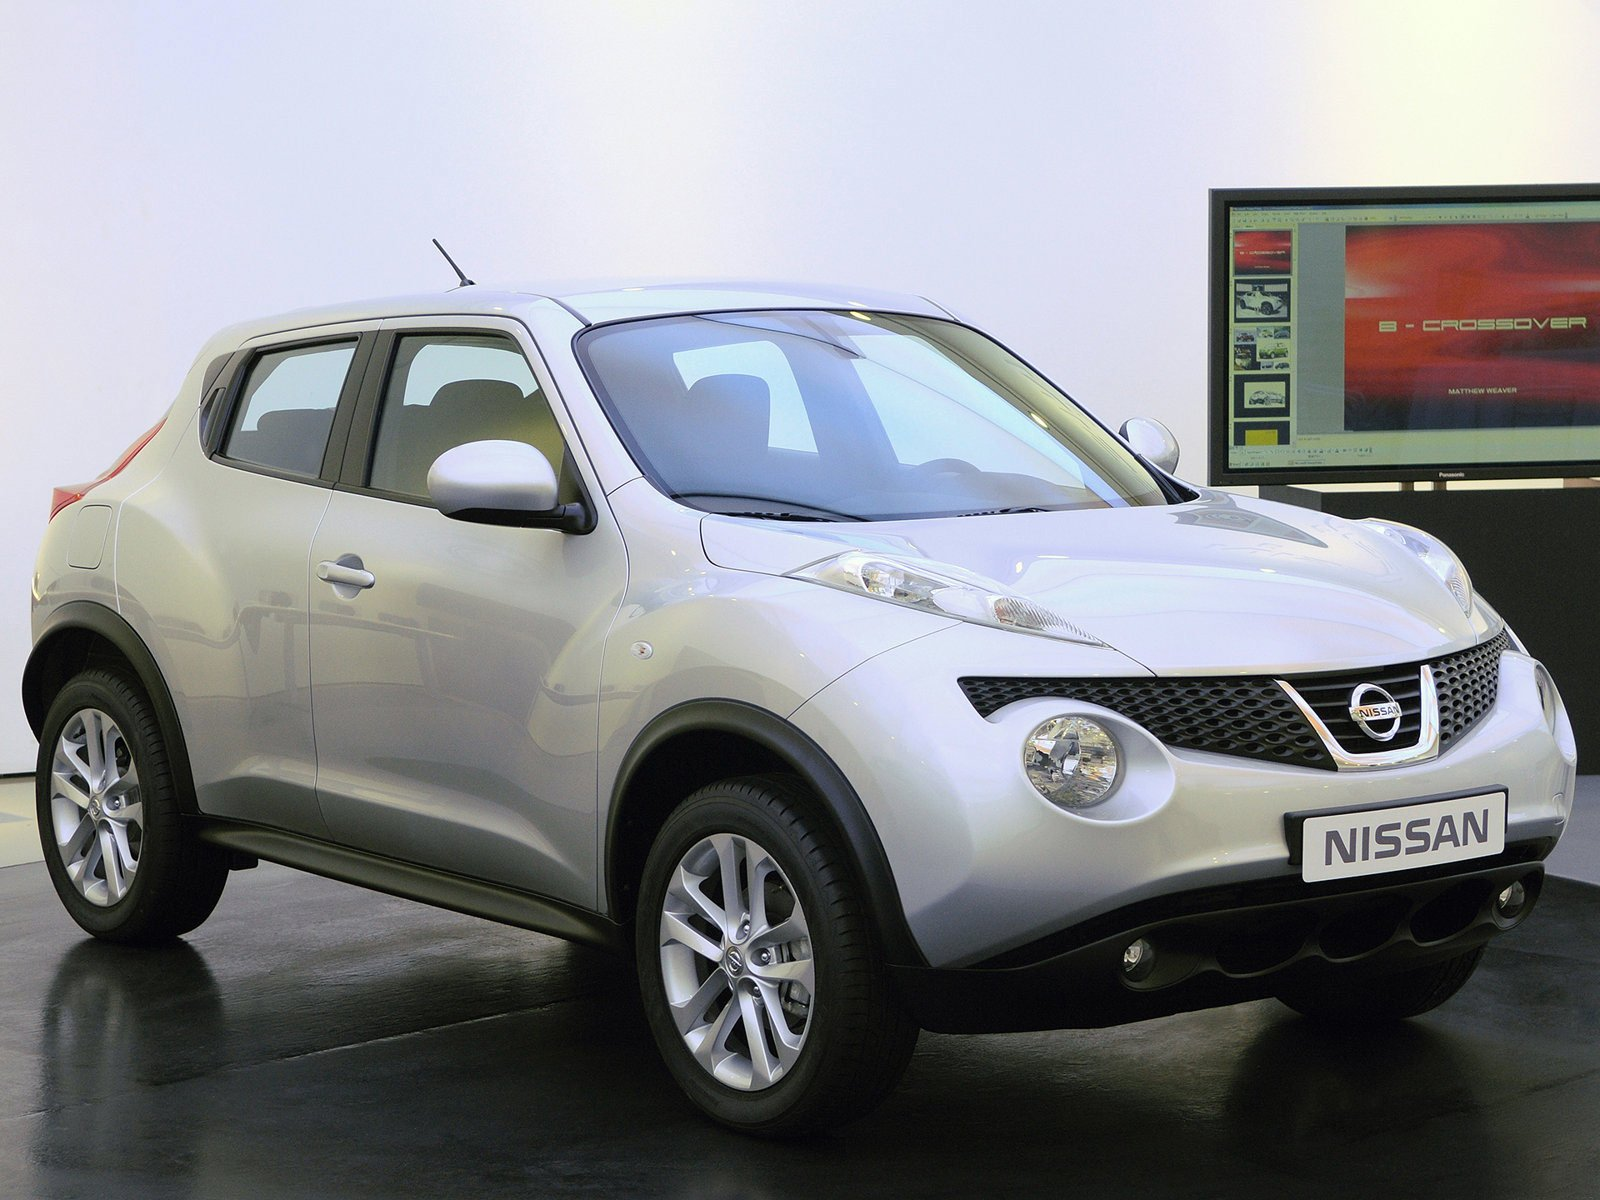 New 2011 Nissan Juke Japanese Car Photos On This Month